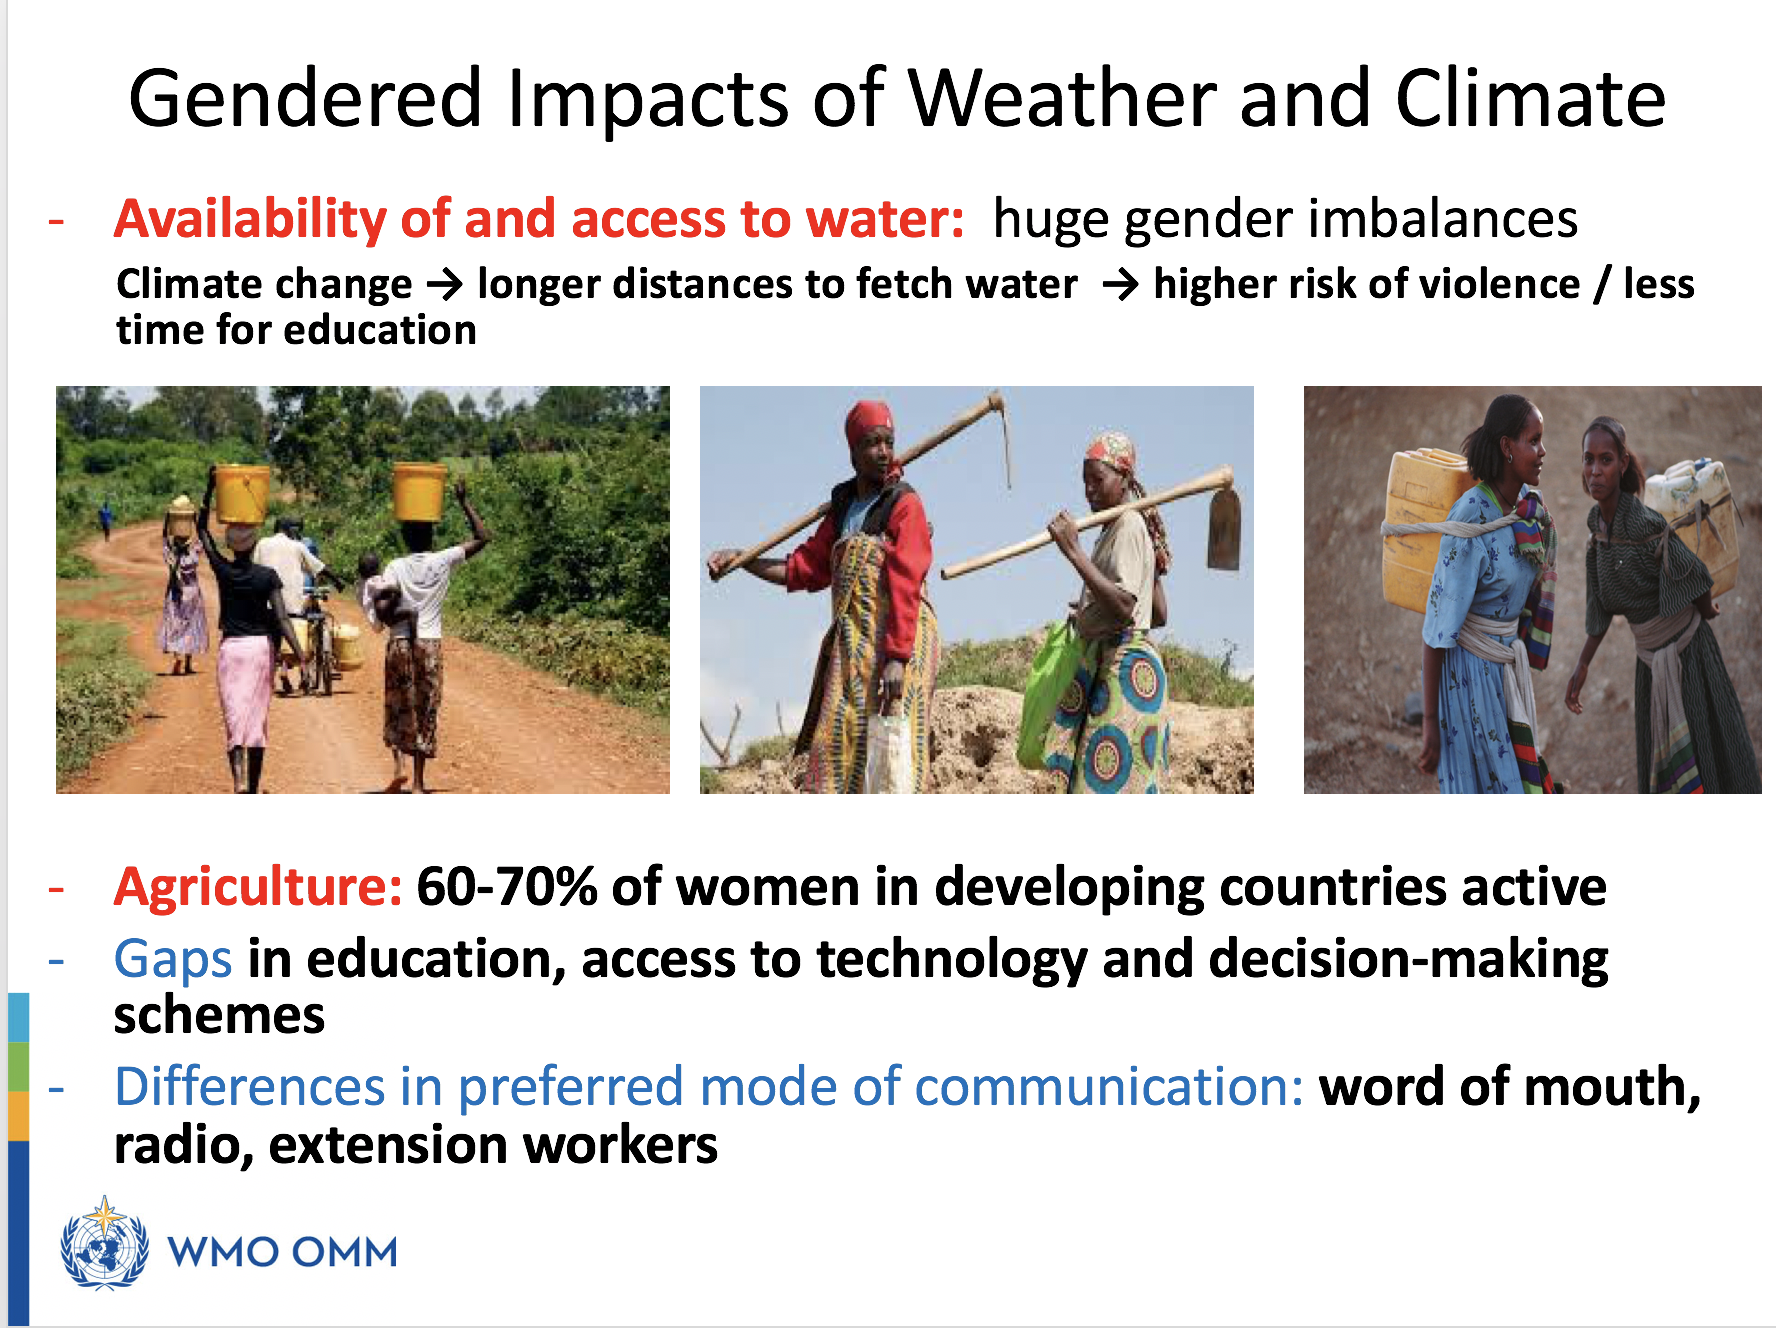 Gender senstive weather and climate services